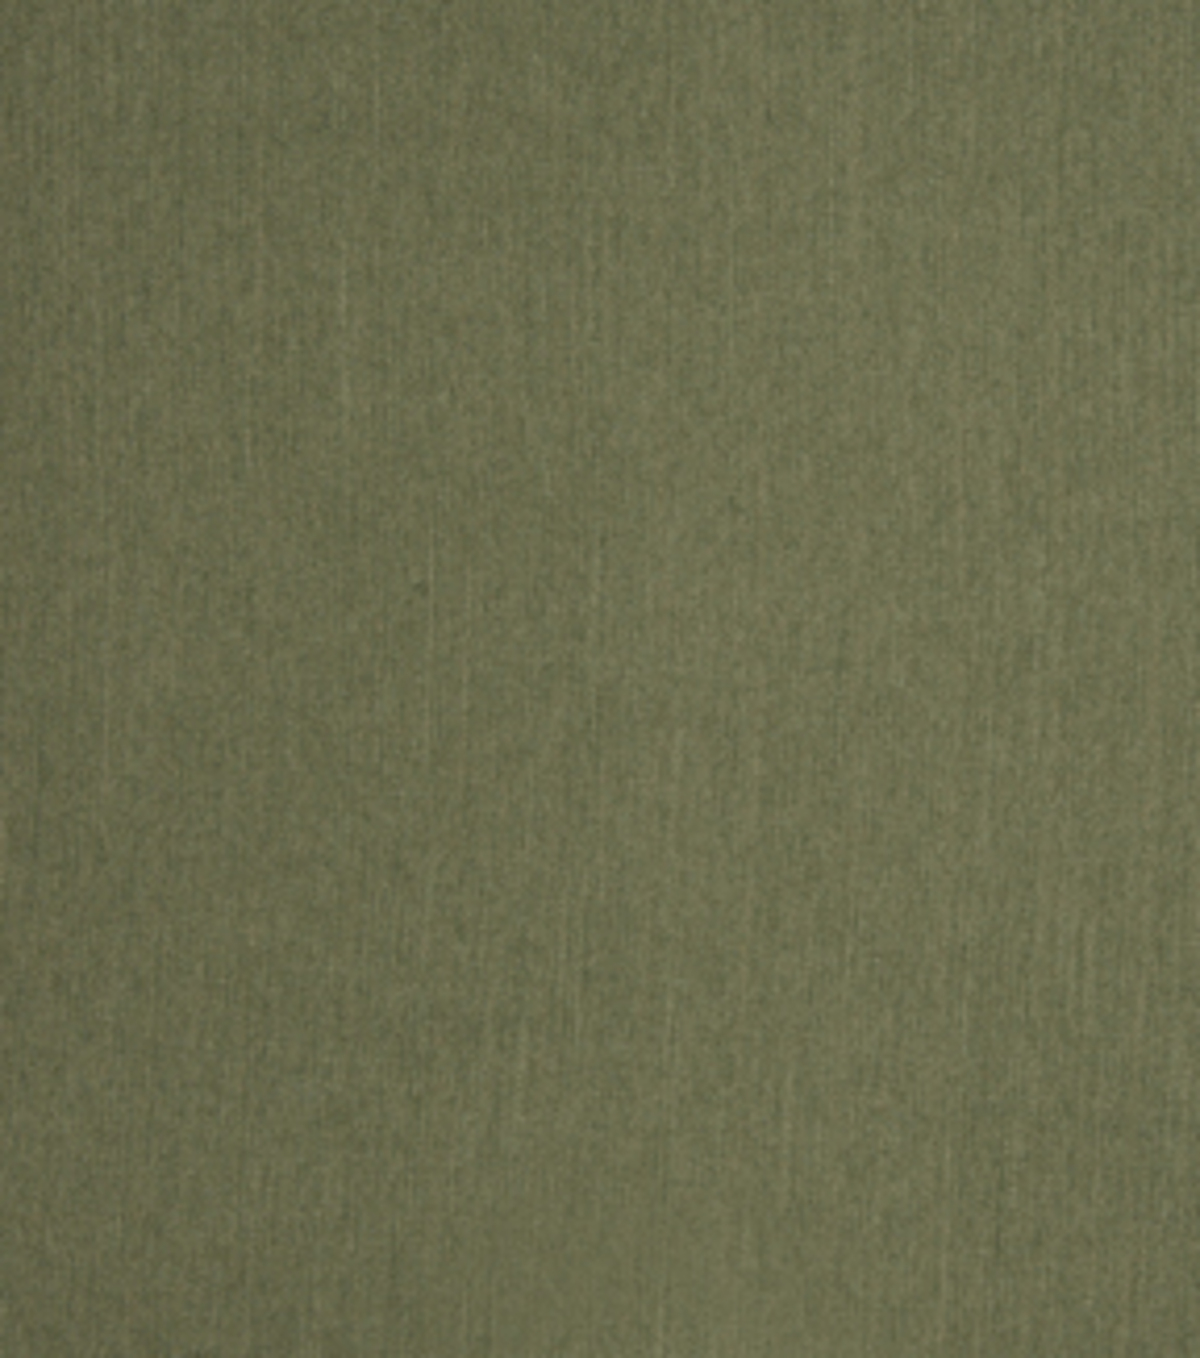 Home Decor 8\u0022x8\u0022 Fabric Swatch-Eaton Square Marionette Ivy